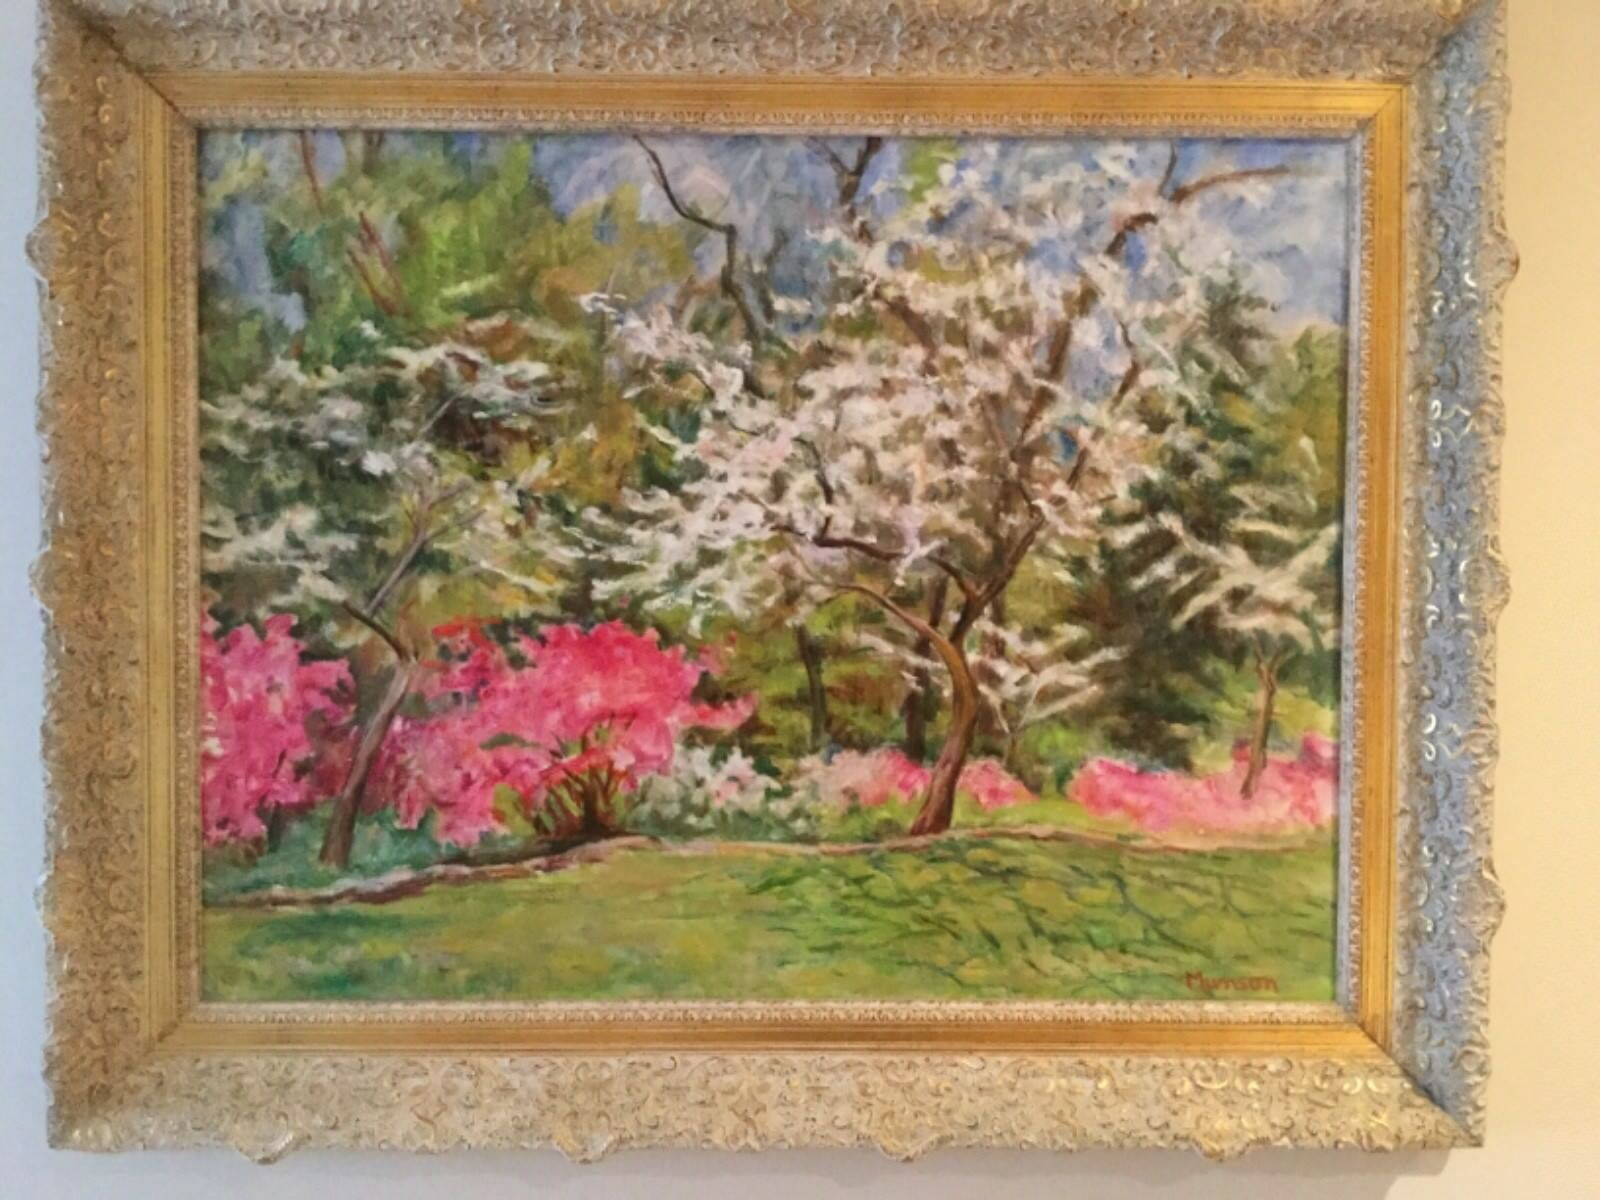 Original Oil On Canvas Of Dogwood Trees In Bloom By Texas Artist Ruth Munson - $2,835.00